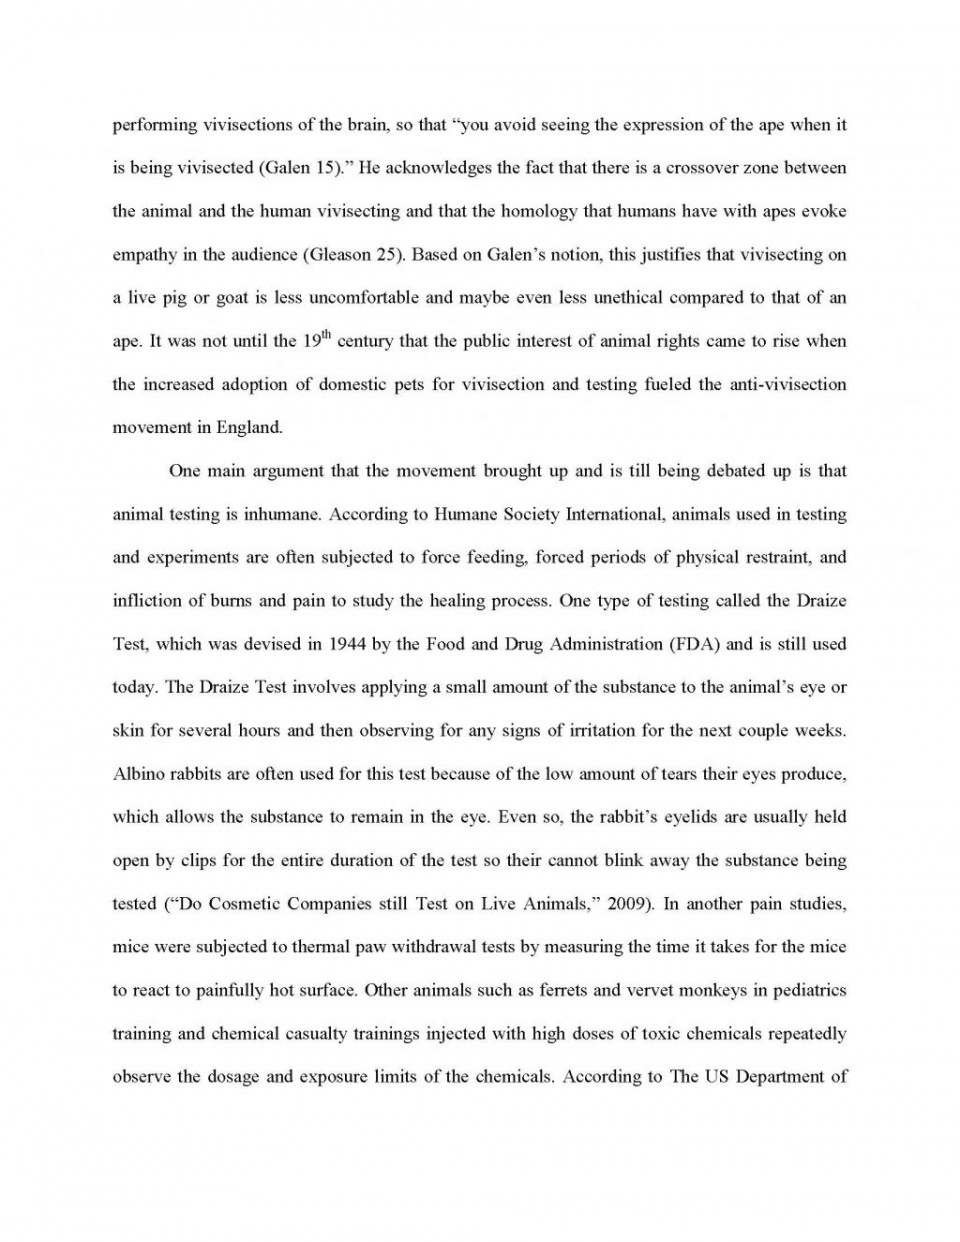 023 Animal Testing Argumentative Essay Title Paper Titles Outline Cosmetic Persuasive20 1024x1325 Persuasive Research Topics About Beautiful Animals 960